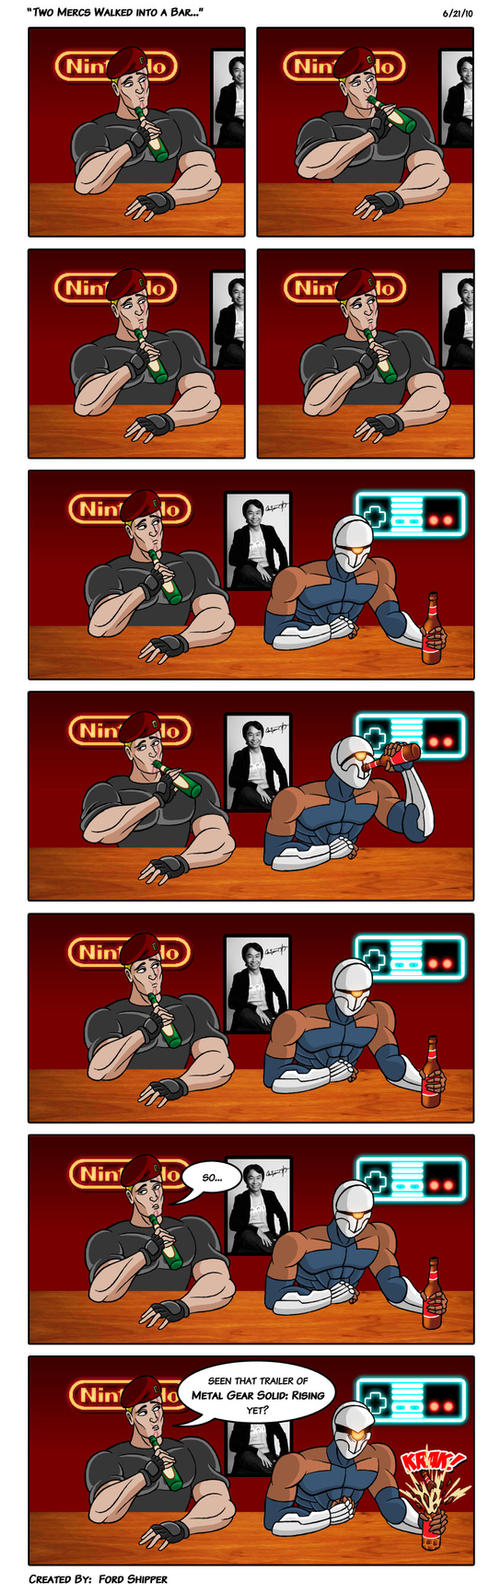 Two Mercs Walked into a Bar... by Mystic-Forces